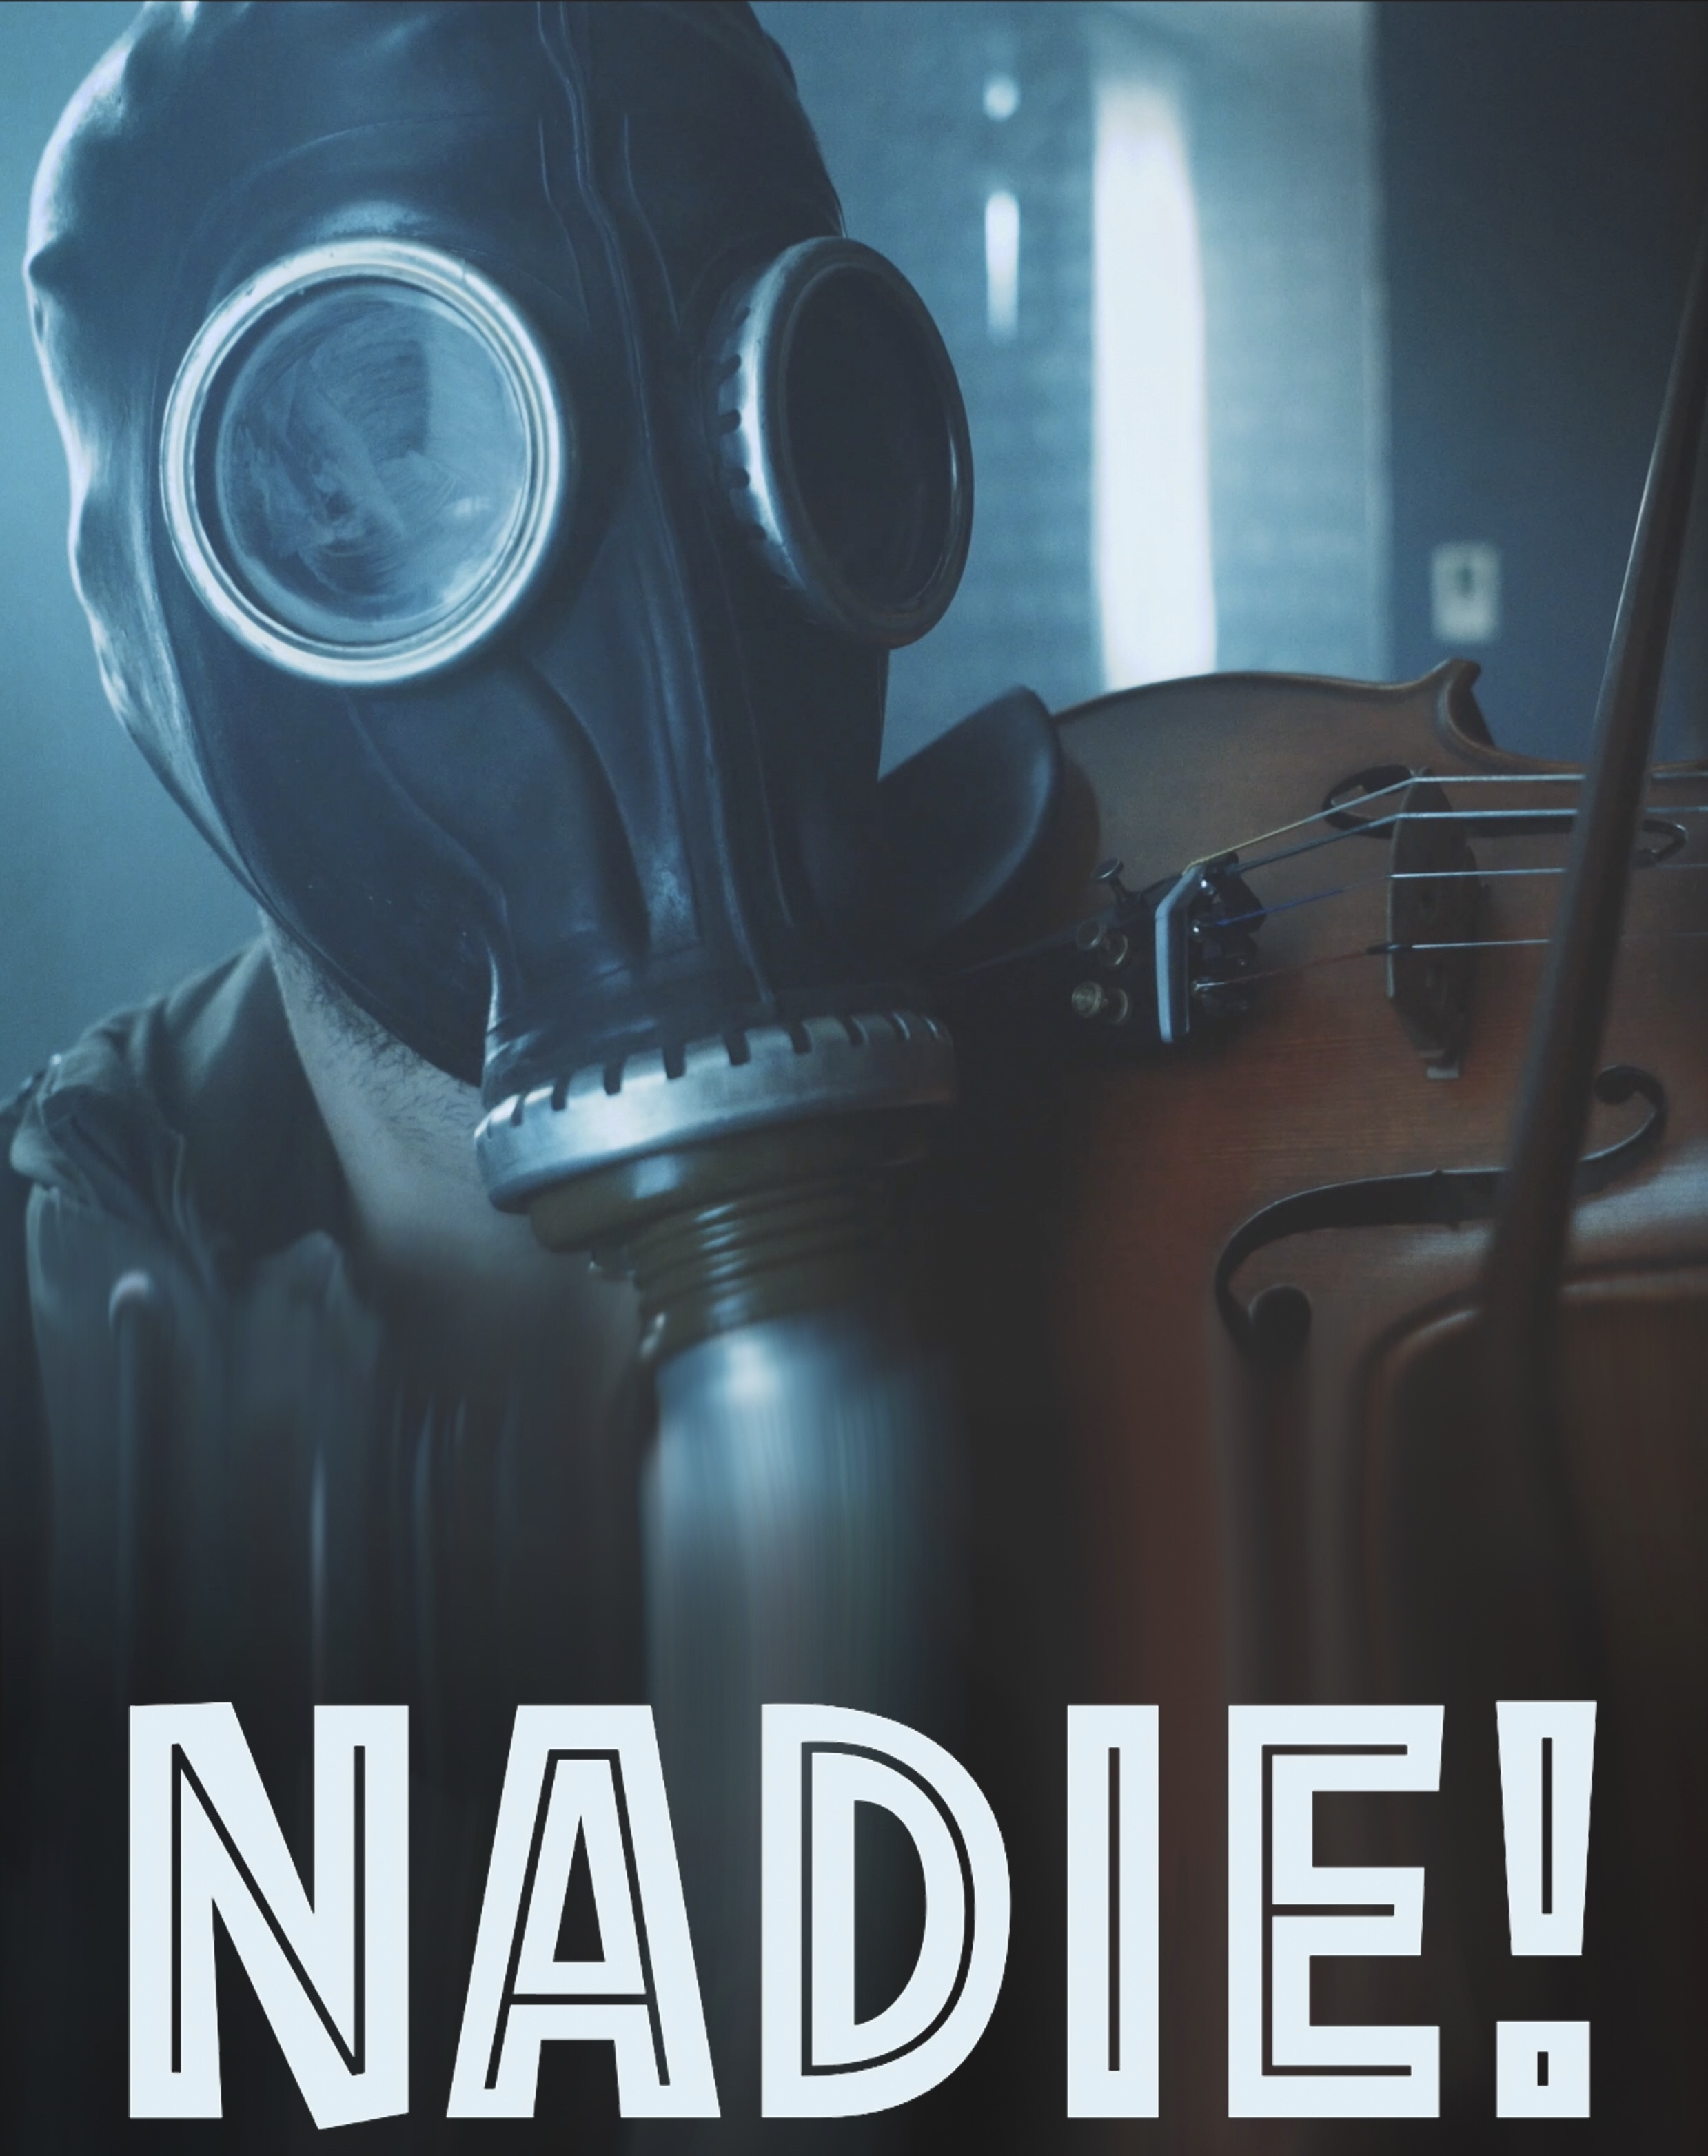 Nadie! hd on soap2day